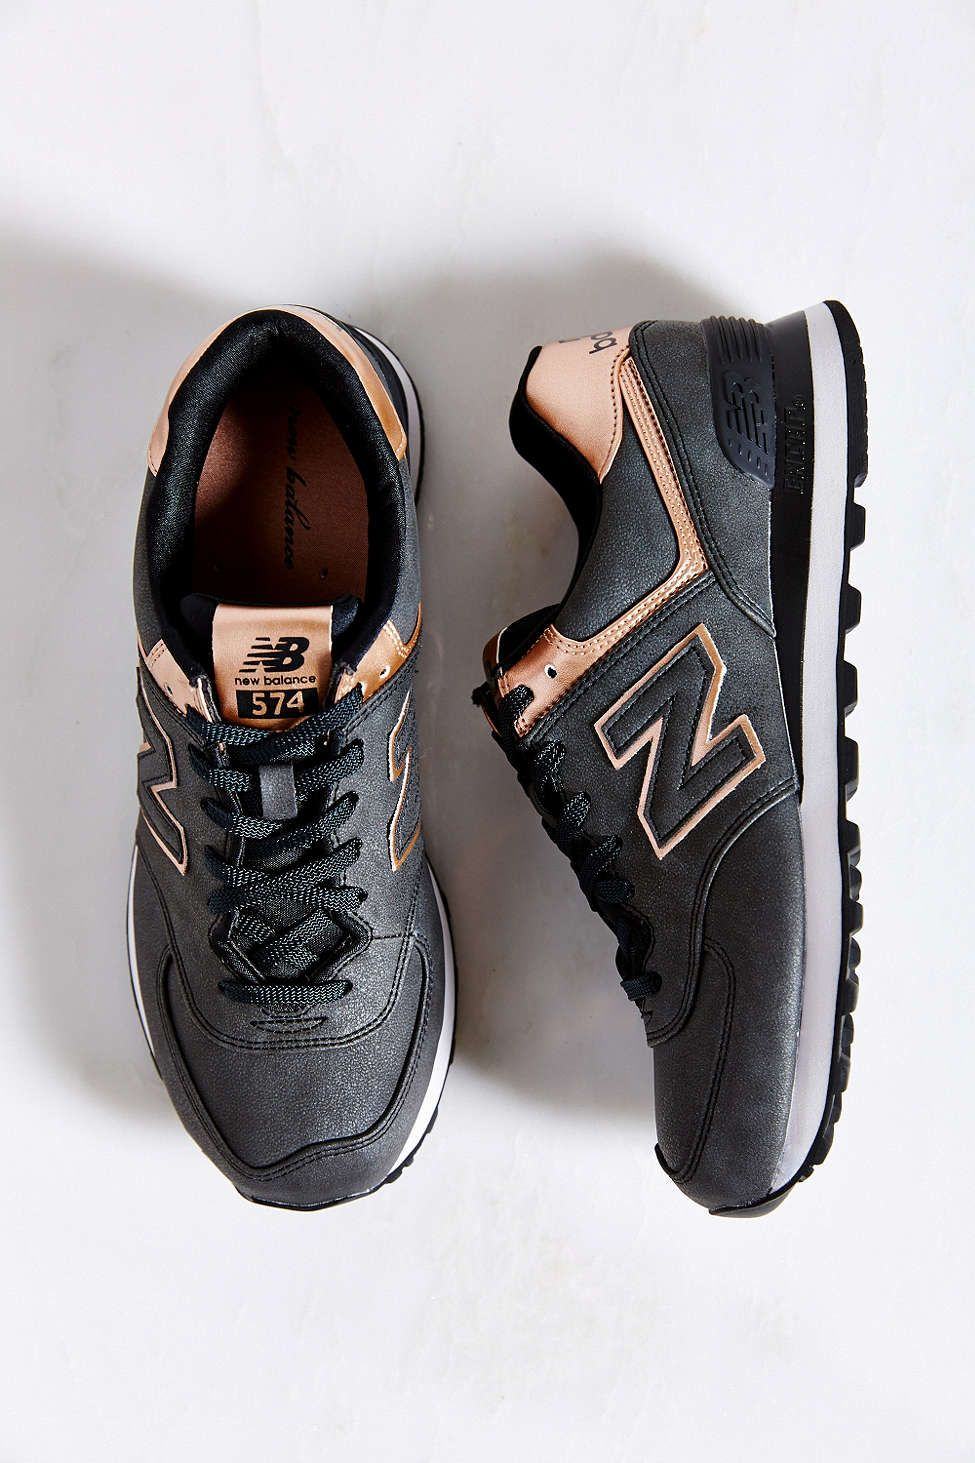 New Balance 515 Moda casual